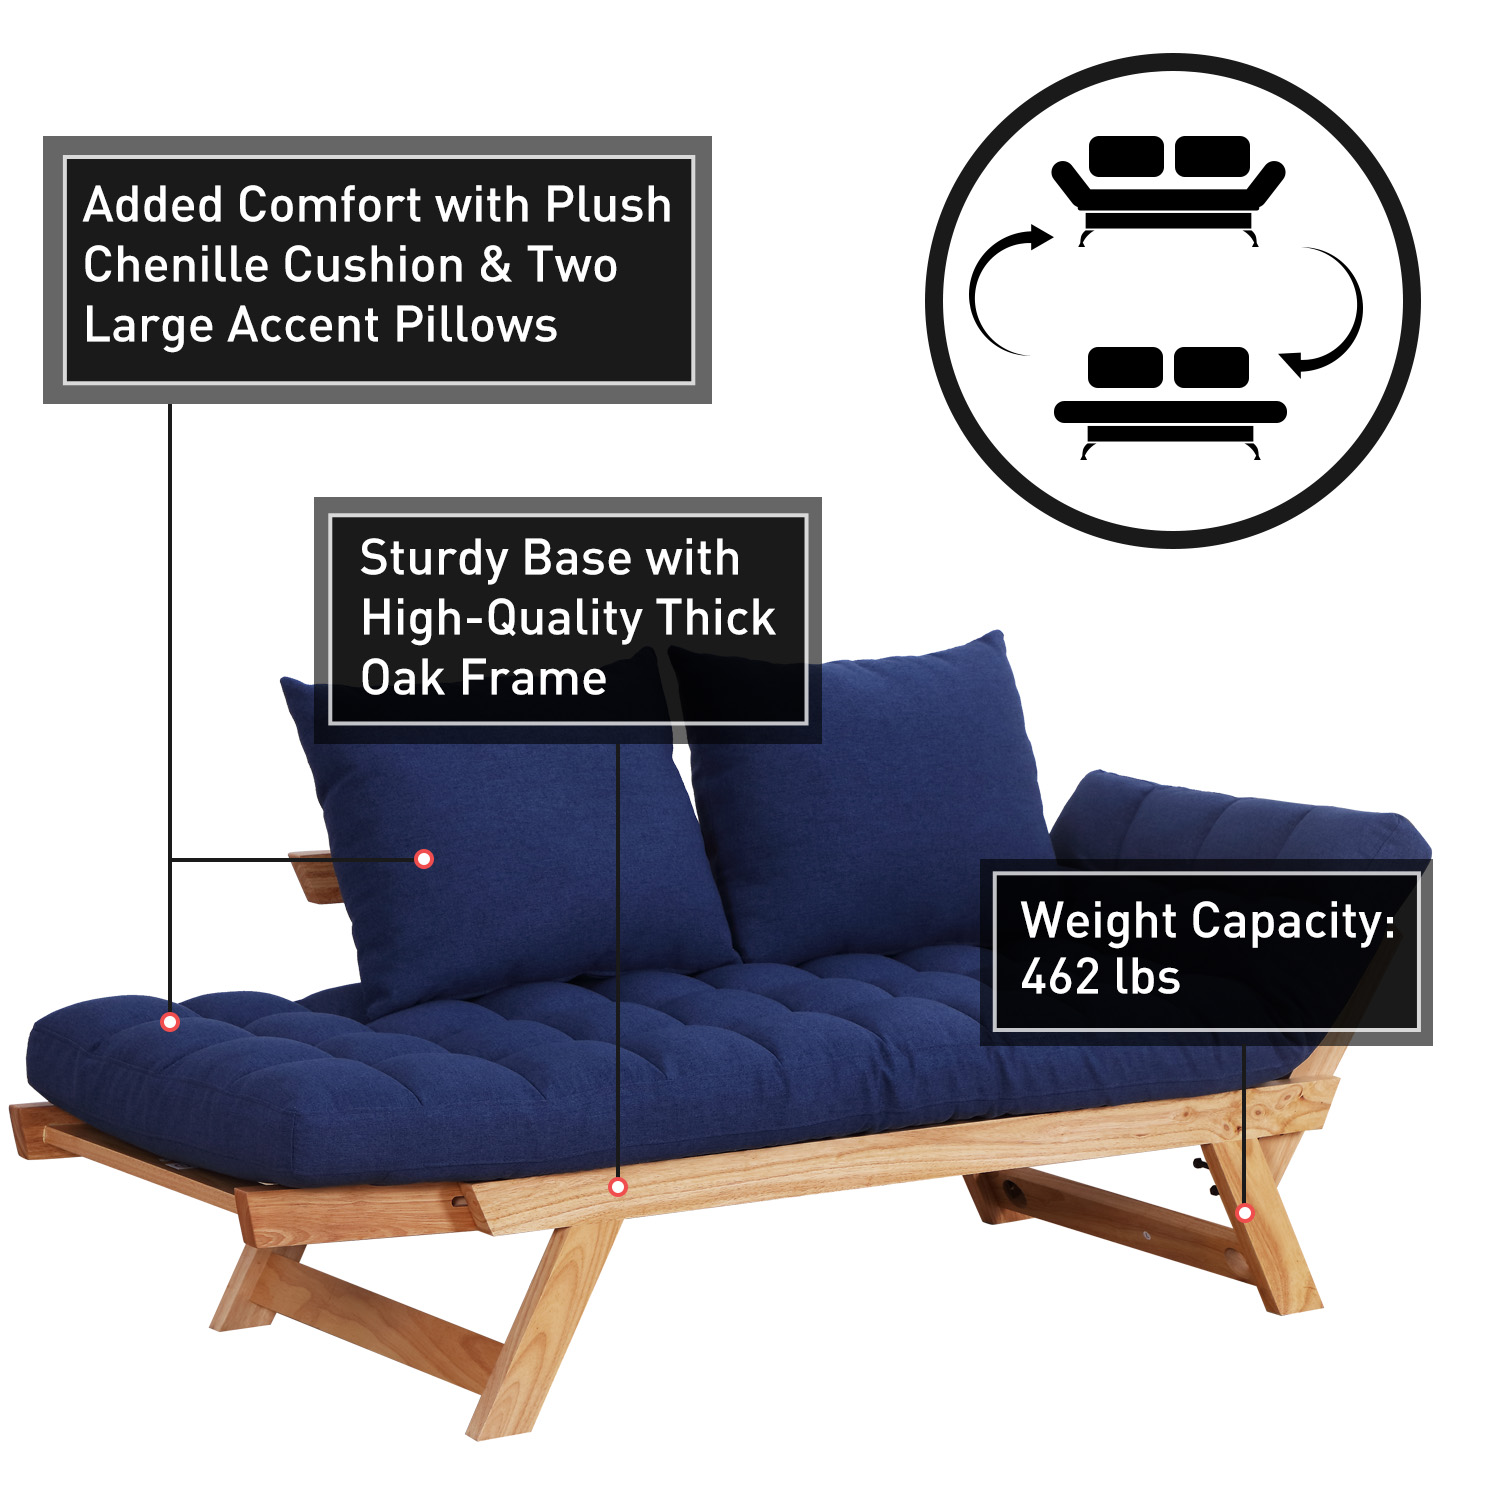 Convertible-Sofa-Bed-Sleeper-Couch-Chaise-Lounge-Chair-Adjustable-Padded-Pillow thumbnail 49